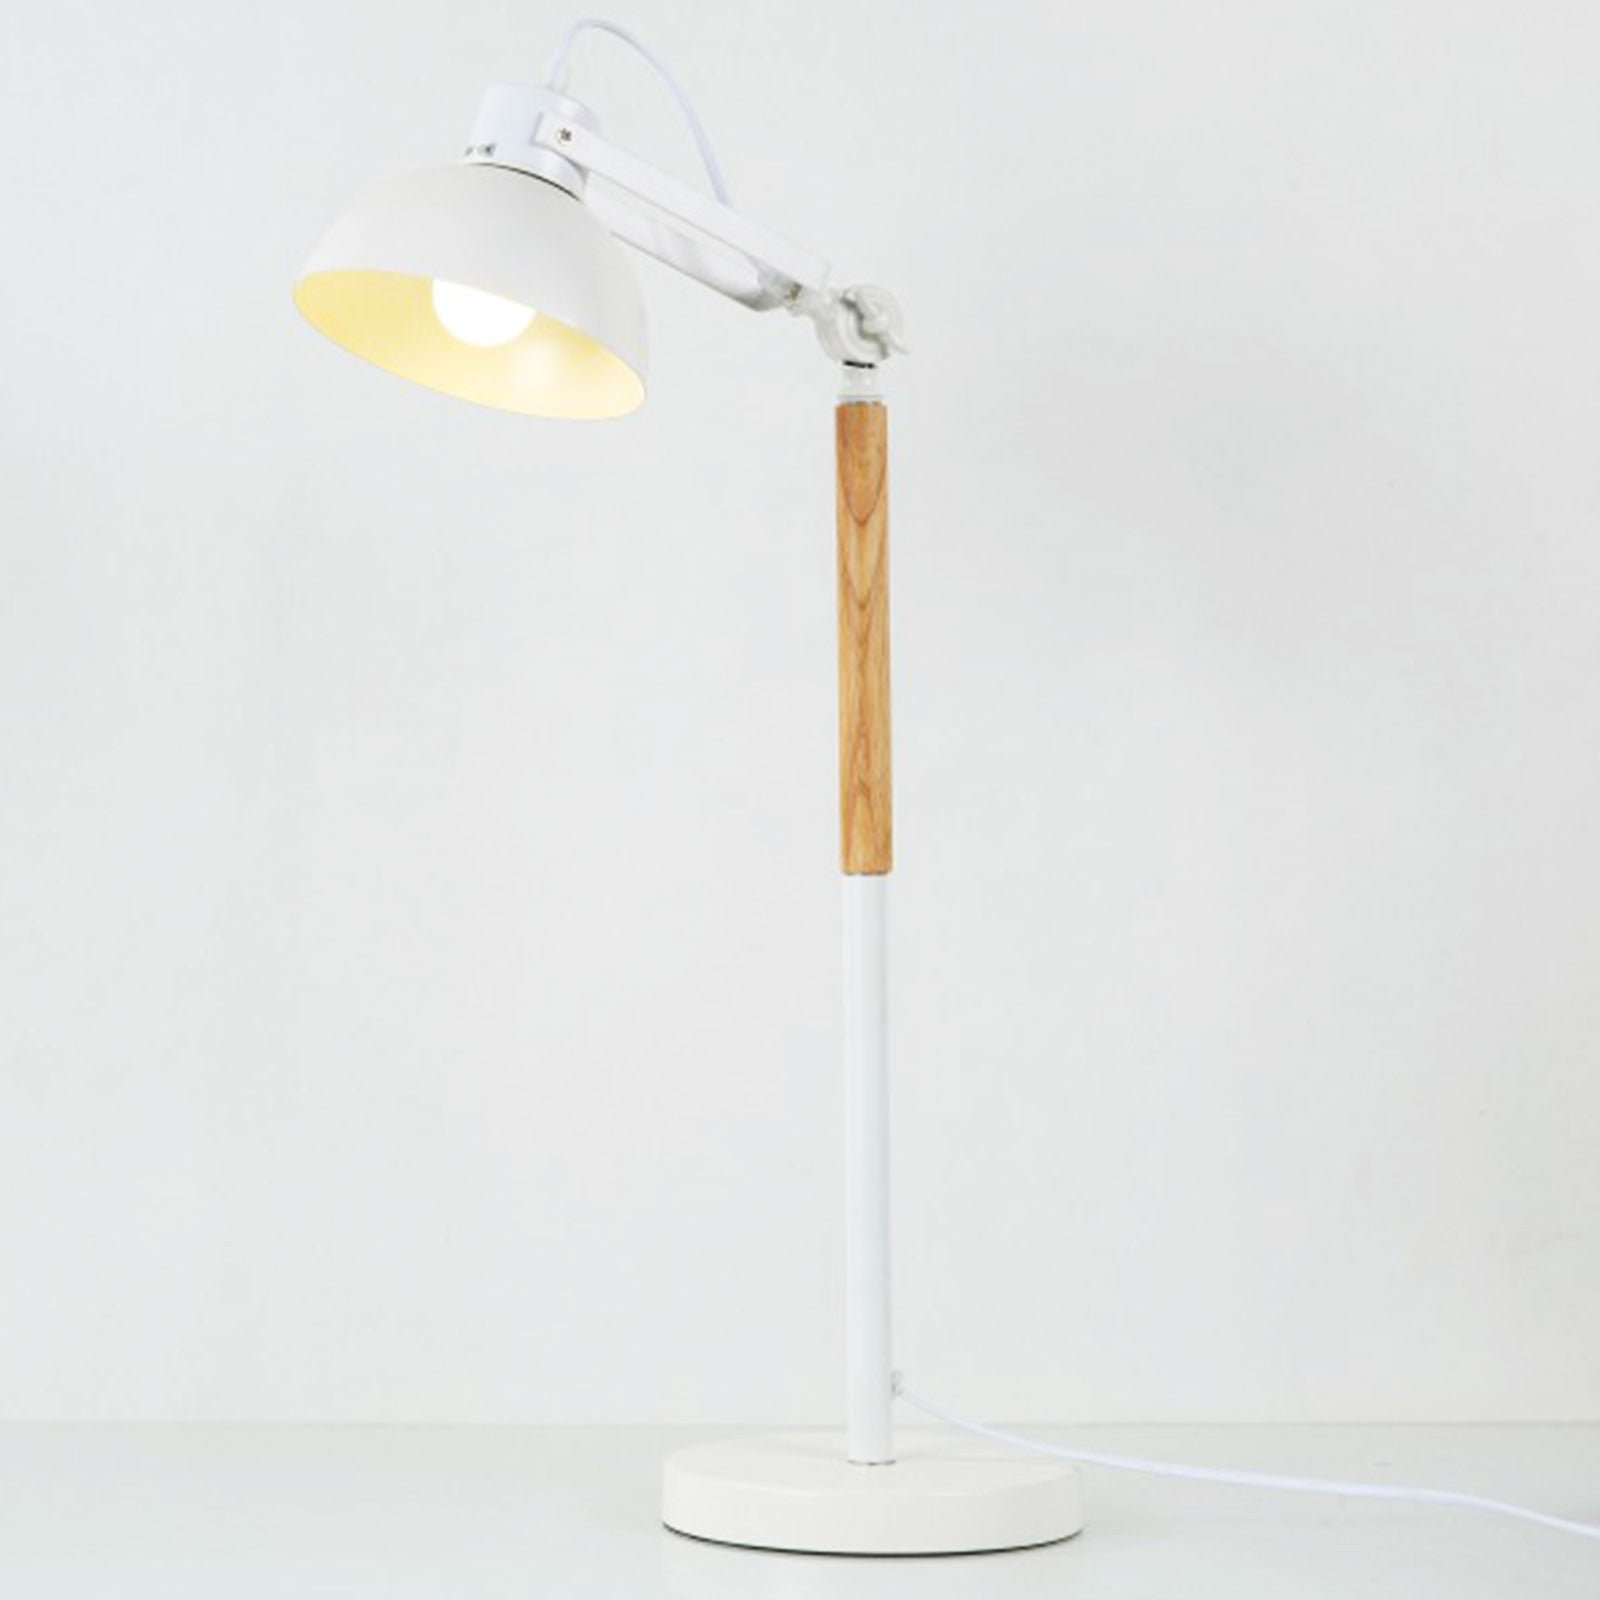 Retro Table  Lamp  CY-LTD-033-W - ebarza